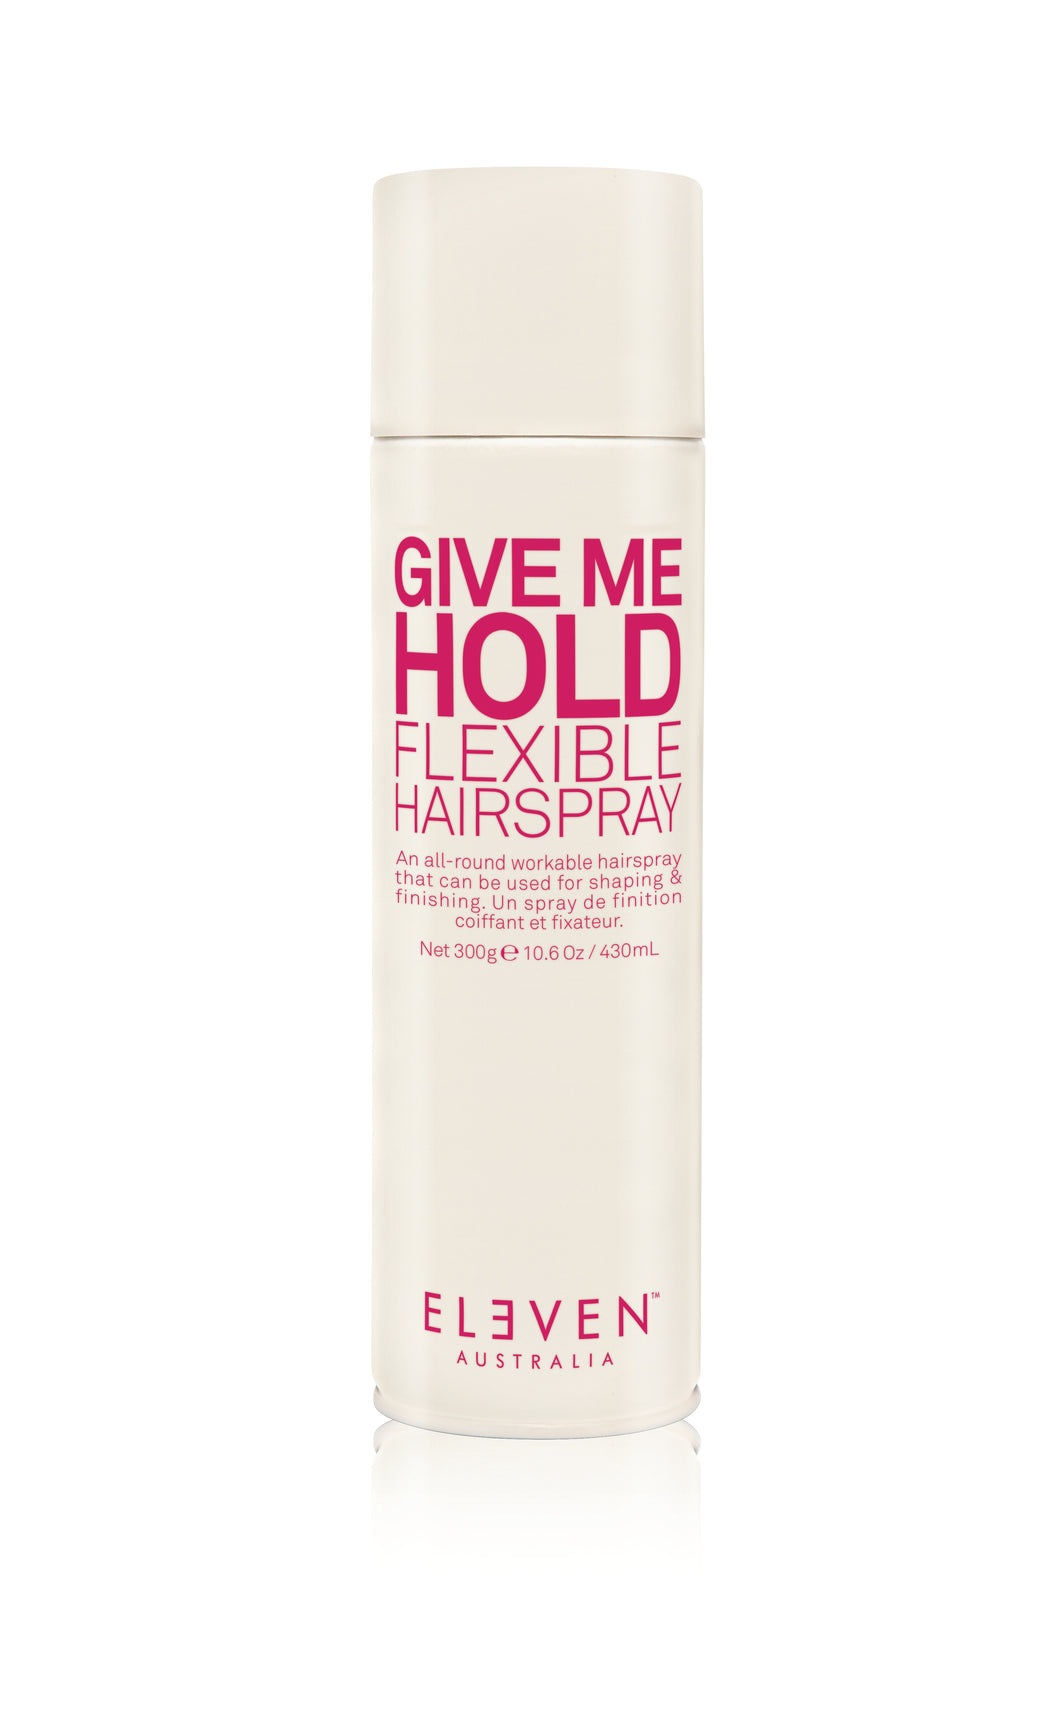 Give Me Hold Flexible Hairspray 400g